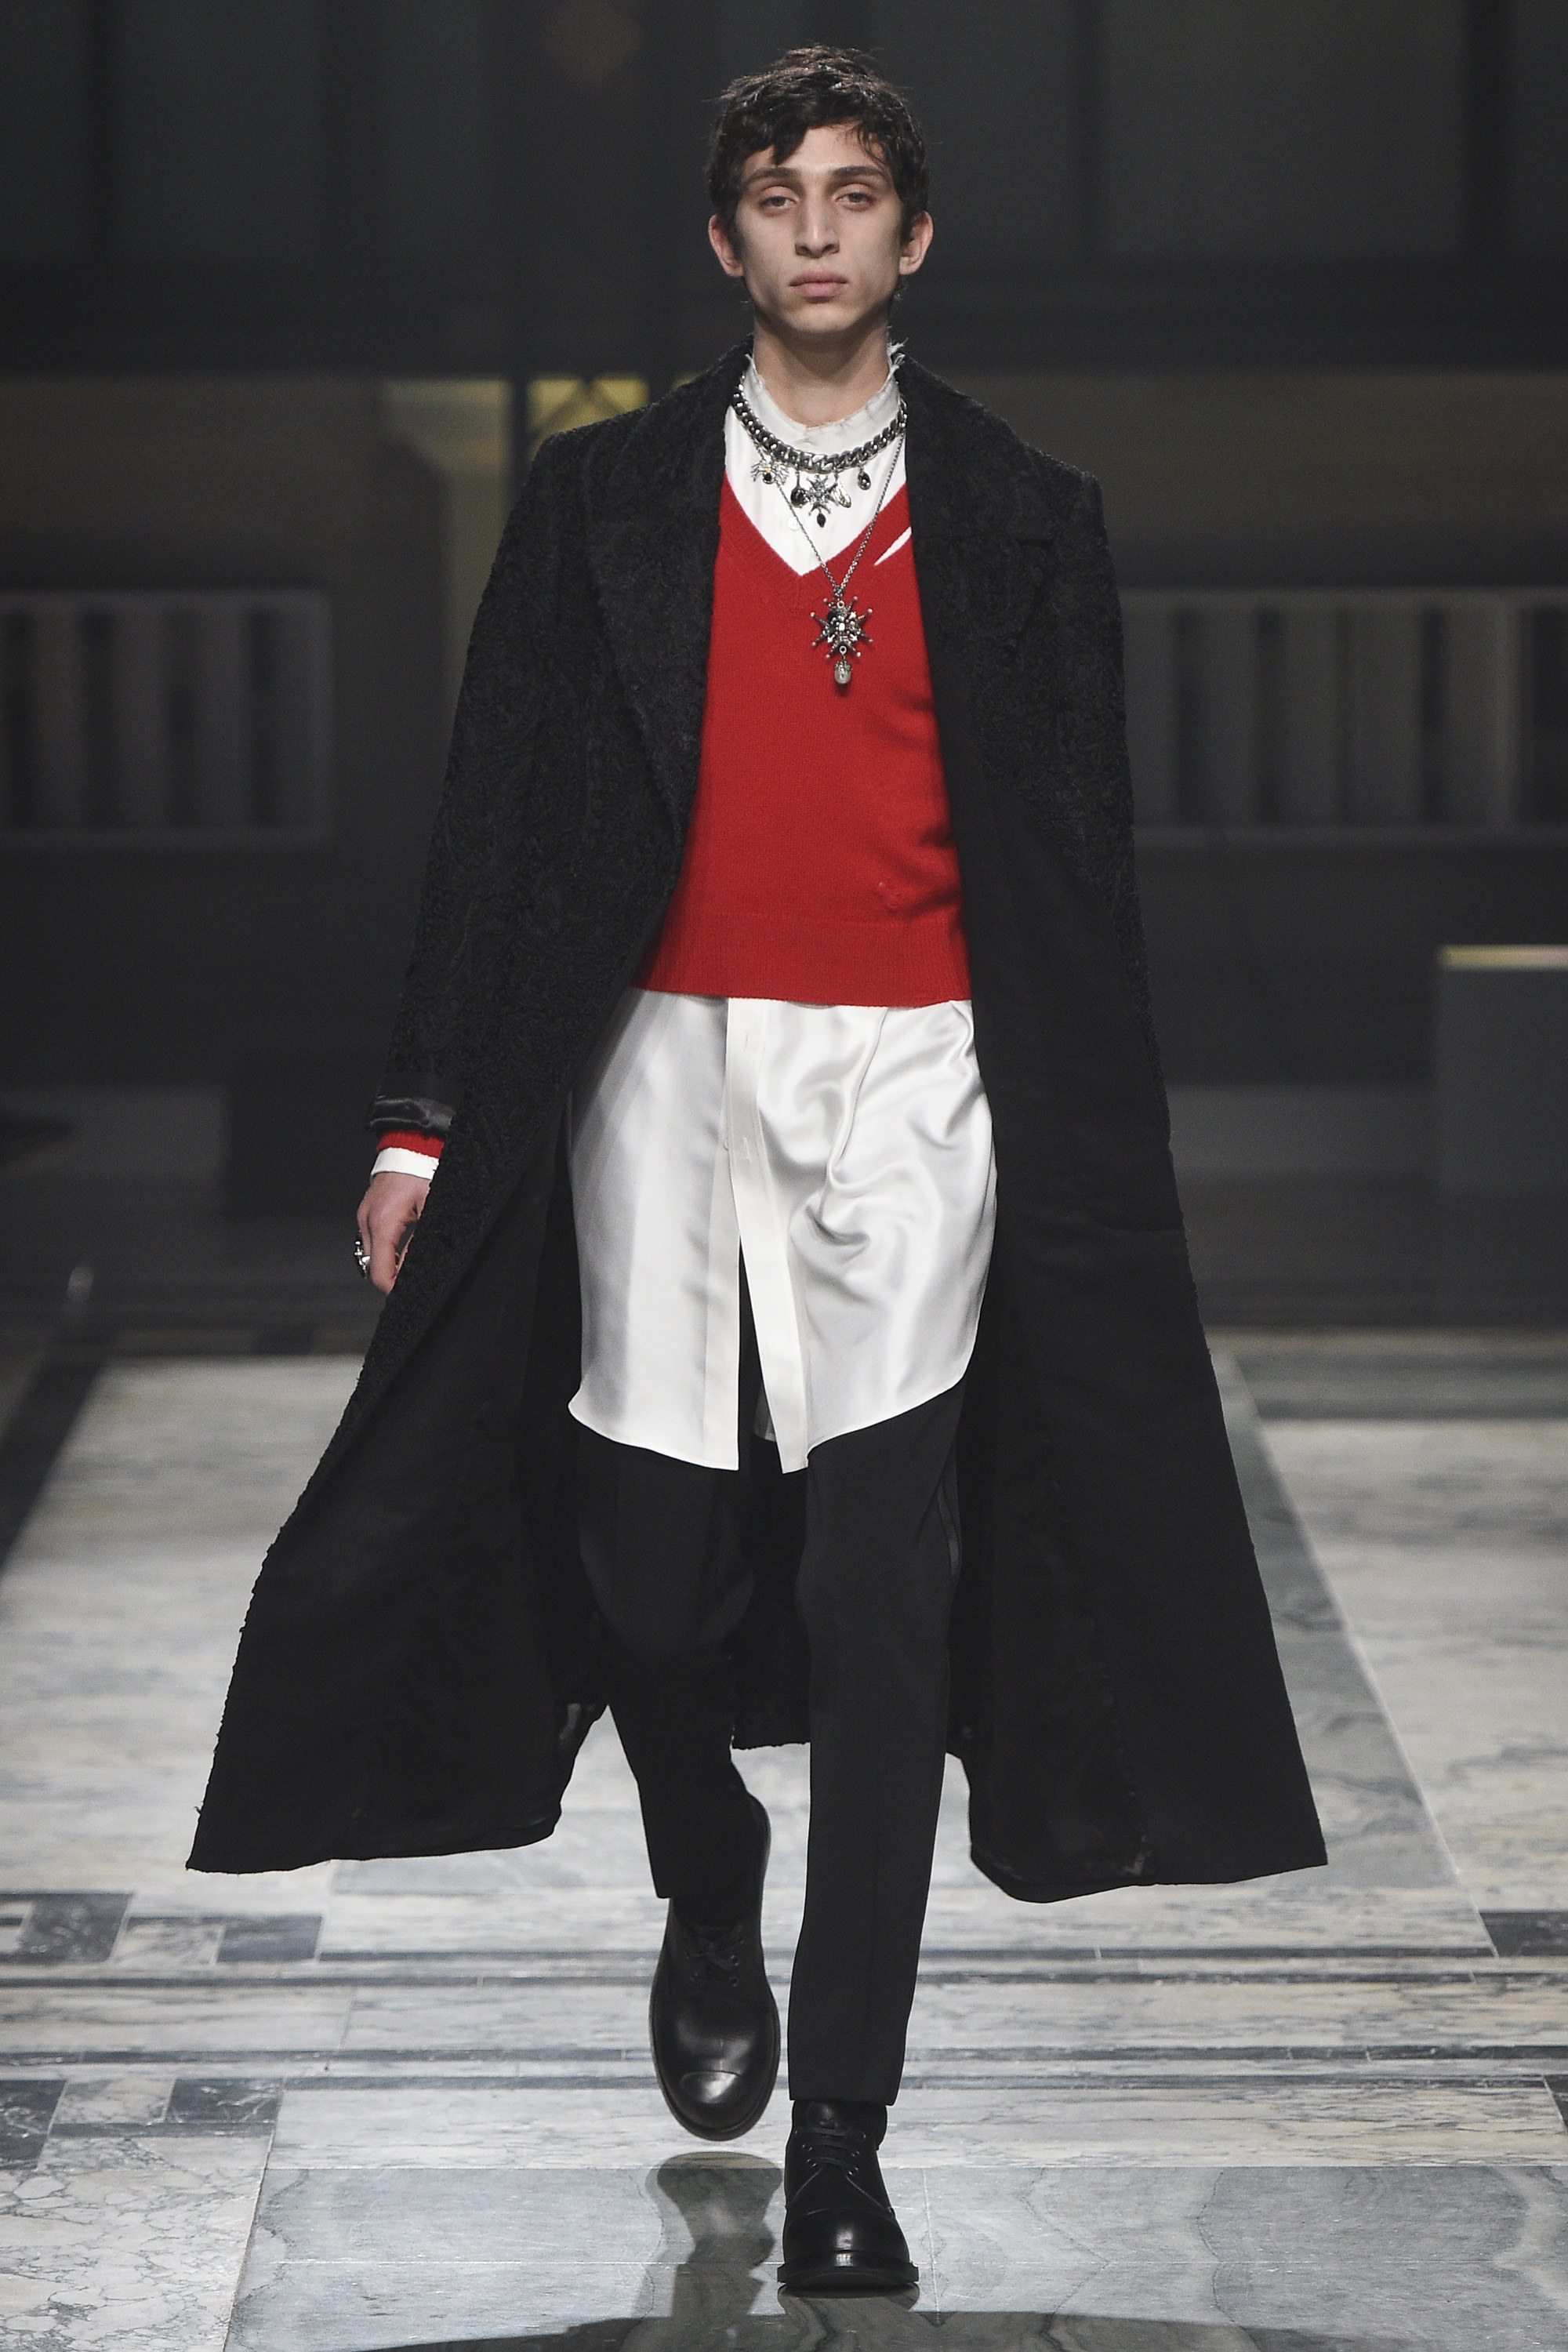 alexander mcqueen, fashion show, london collection, fashion blogger, blog de moda, alex cursino, moda sem censure, review, digital influencer,  (9)